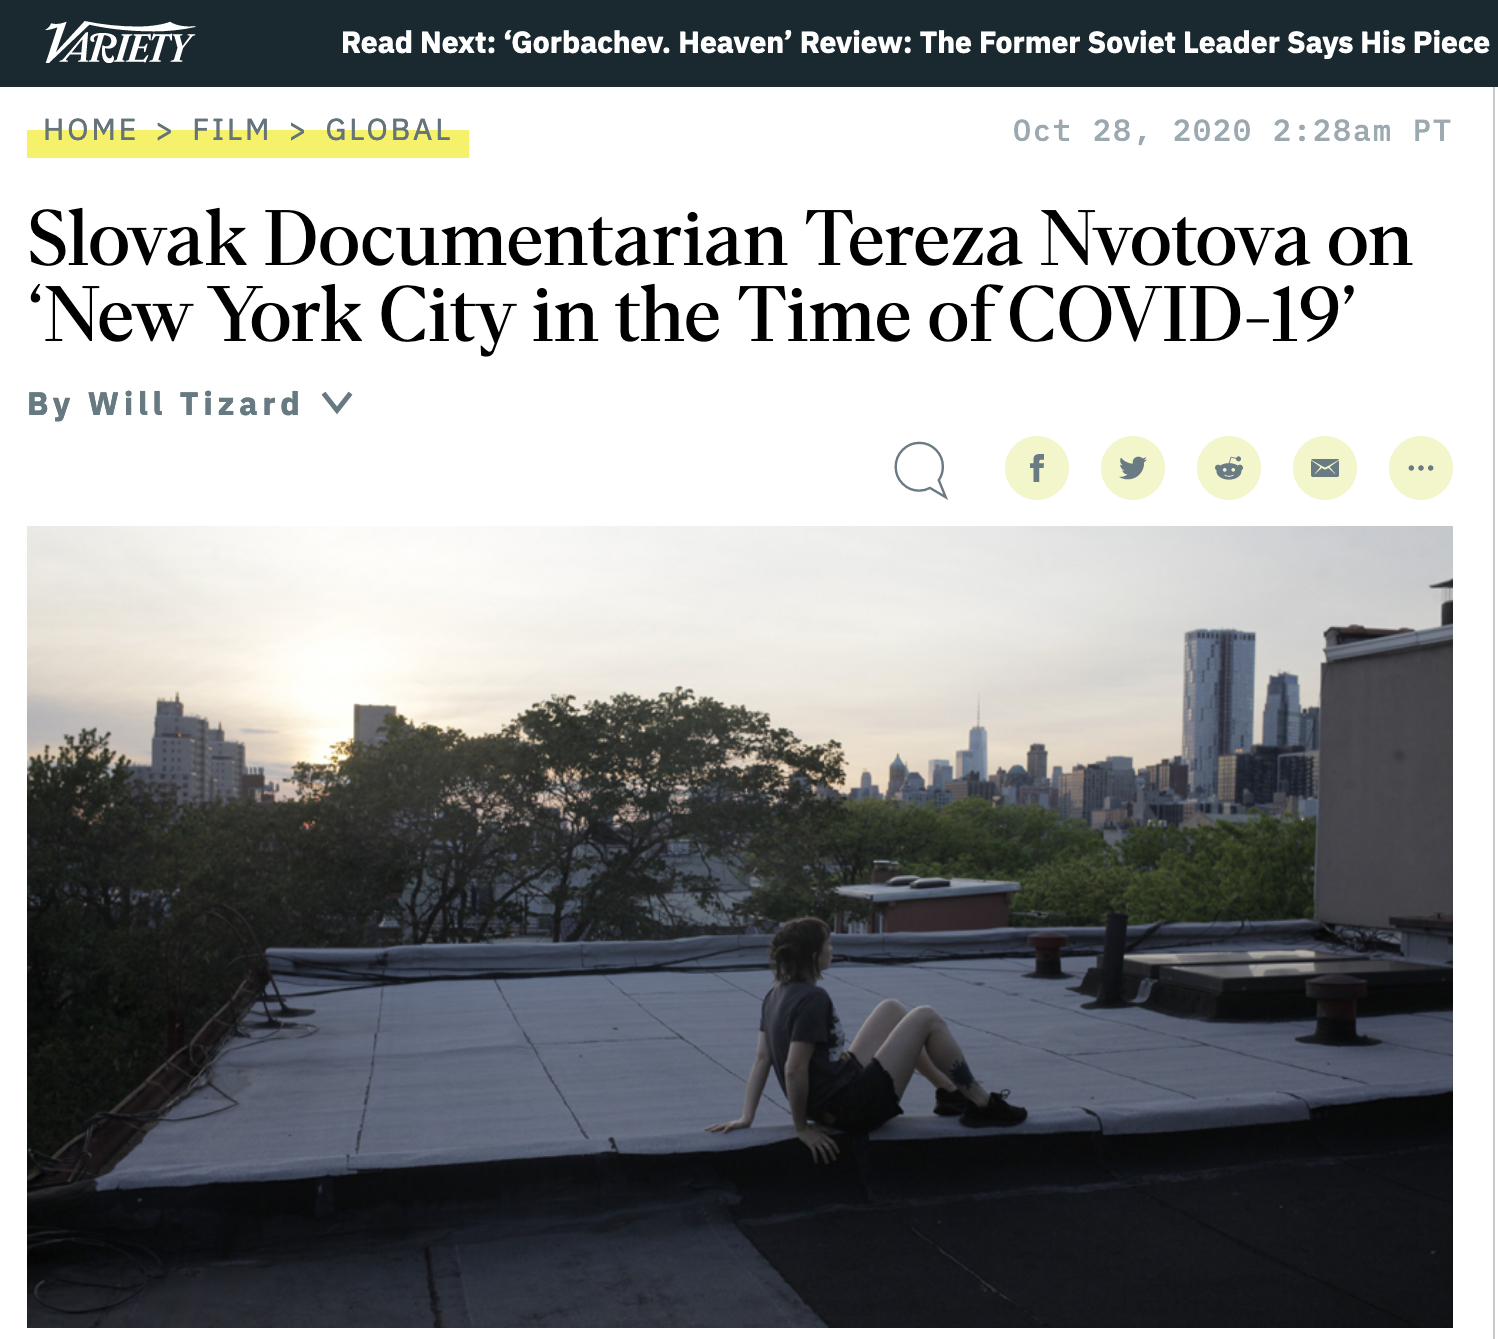 VARIETY: Slovak Documentarian Tereza Nvotova on 'New York City in the Time of COVID-19'